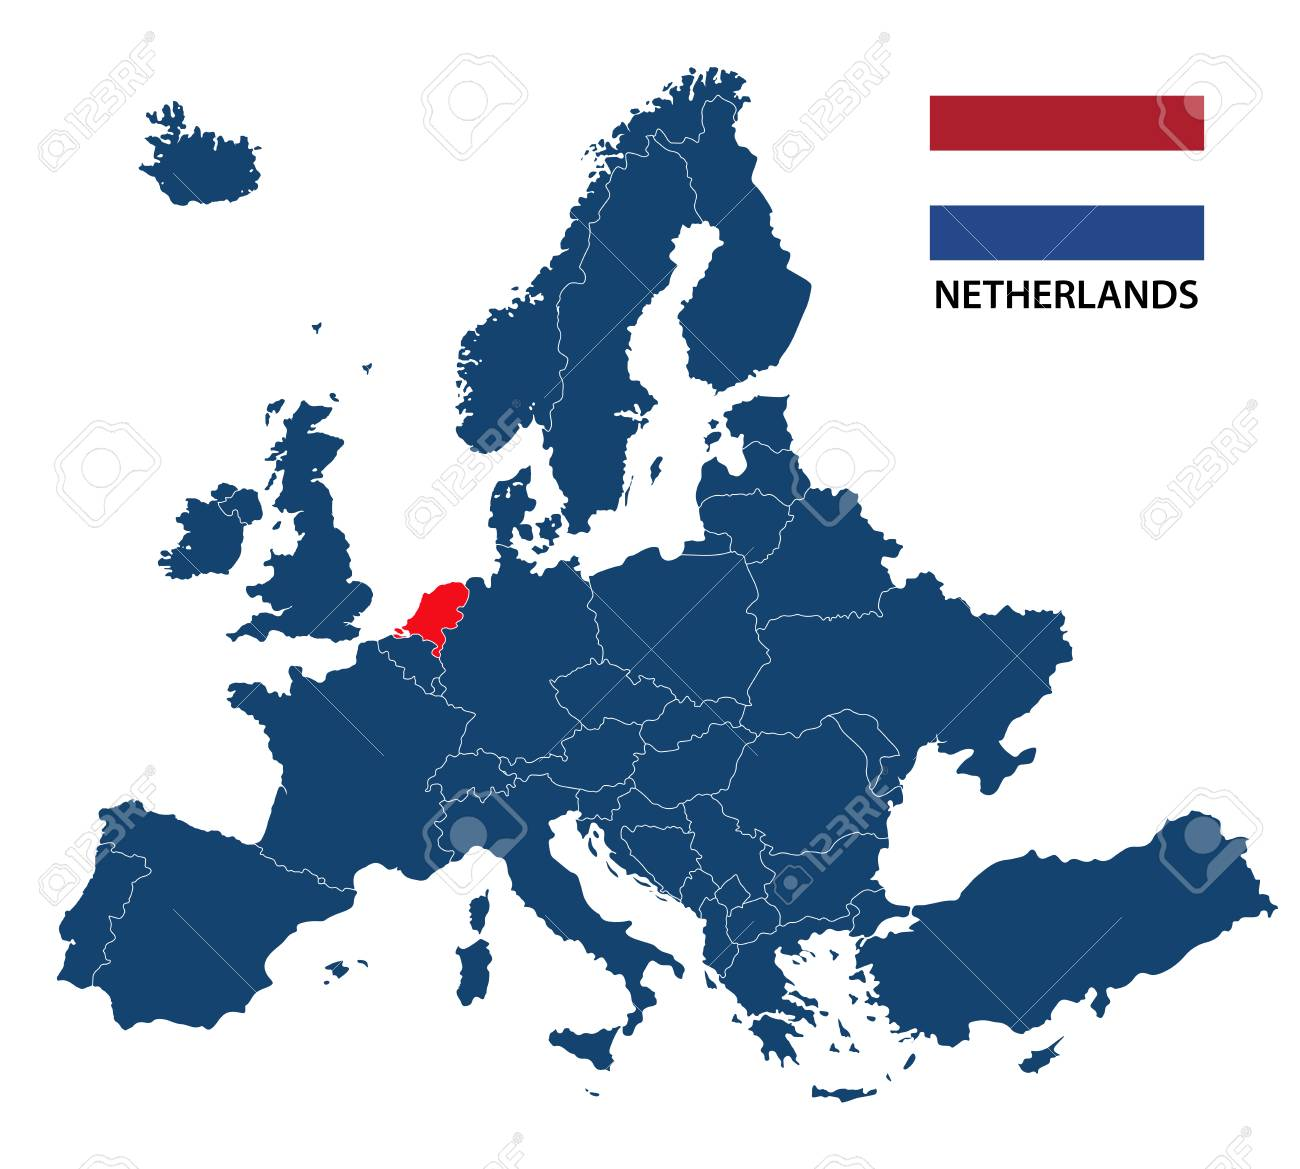 Niederlande Karte Europa.Stock Photo